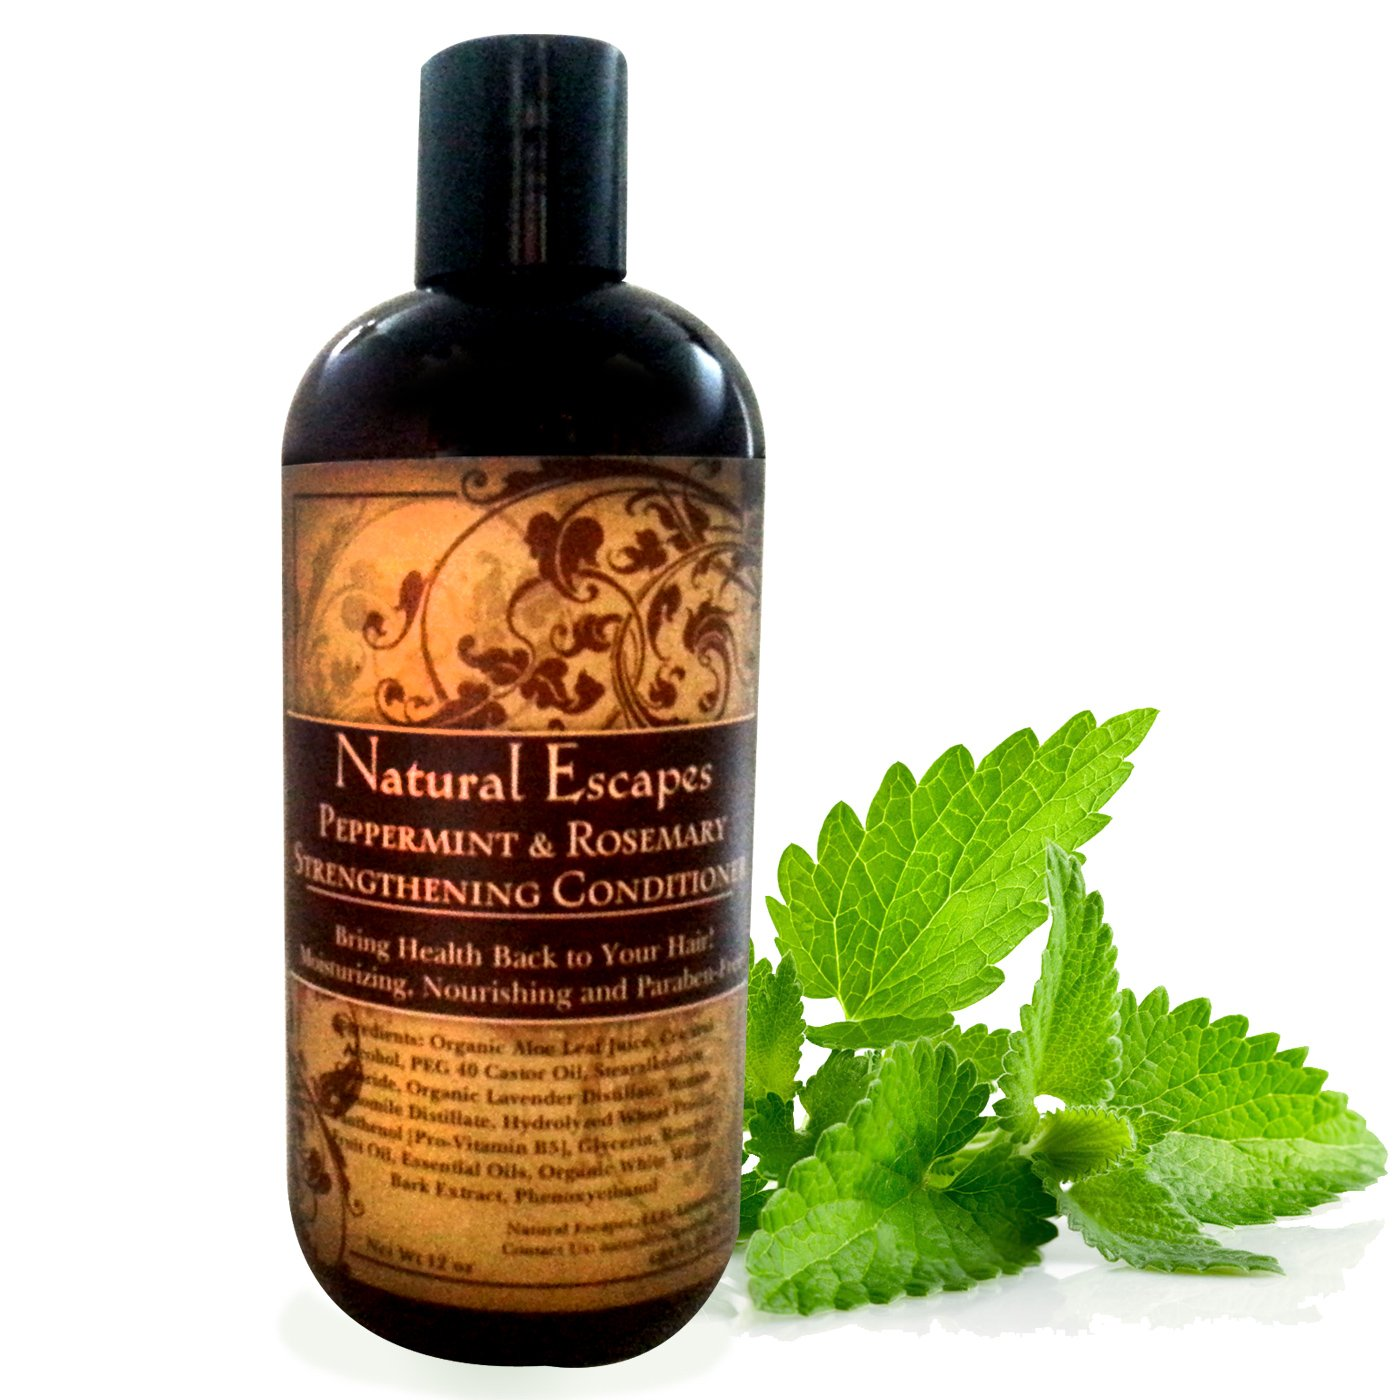 Amazon.com: Peppermint & Rosemary Strengthening Shampoo